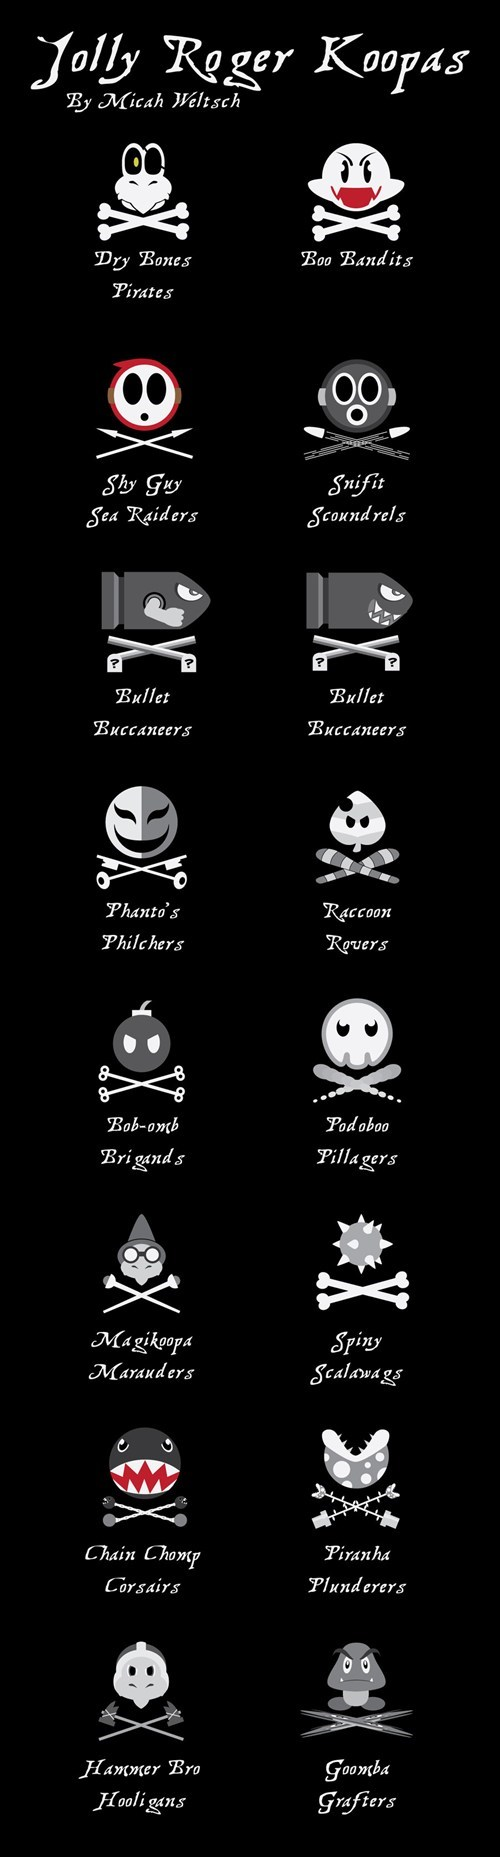 art emblems jolly rogers mario Pirate talk like a pirate - 6596594944